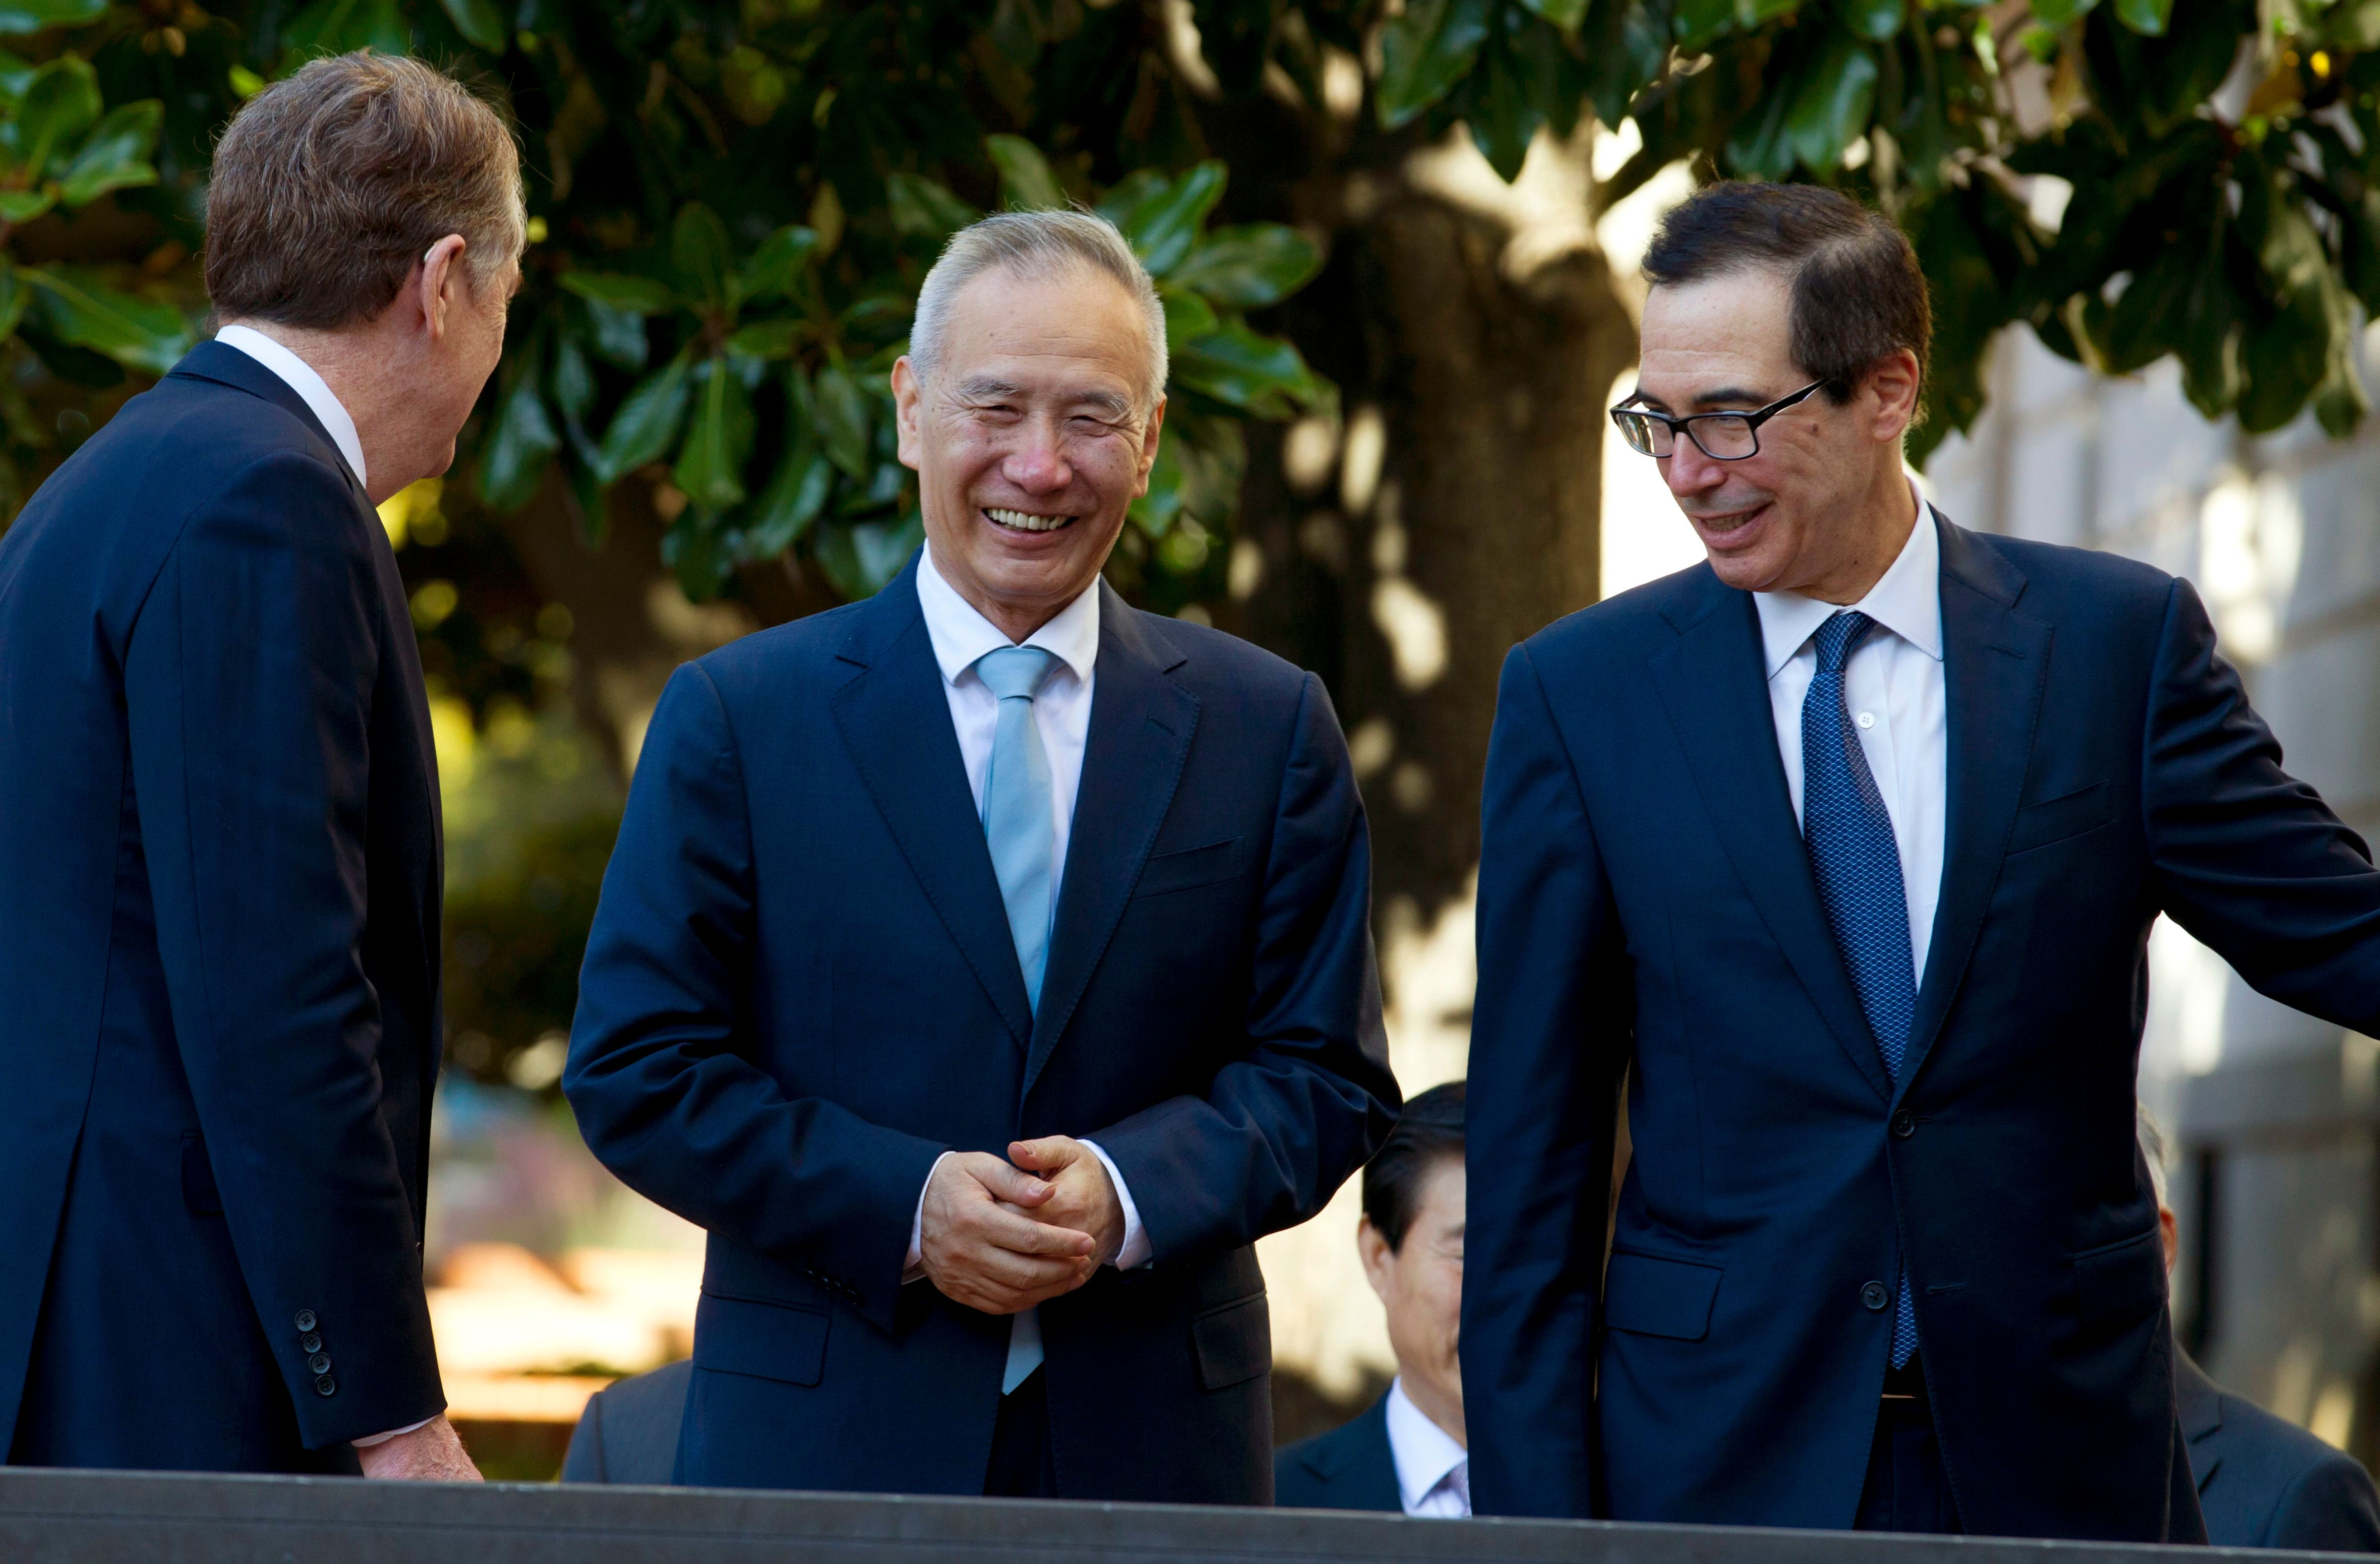 Liu, Lighthizer, Mnuchin meet on trade war Oct 11. Amid ongoing phase-one trade deal negotiations between the U.S. and China, Xi Jinping outlined plans to open China's market to more trade.